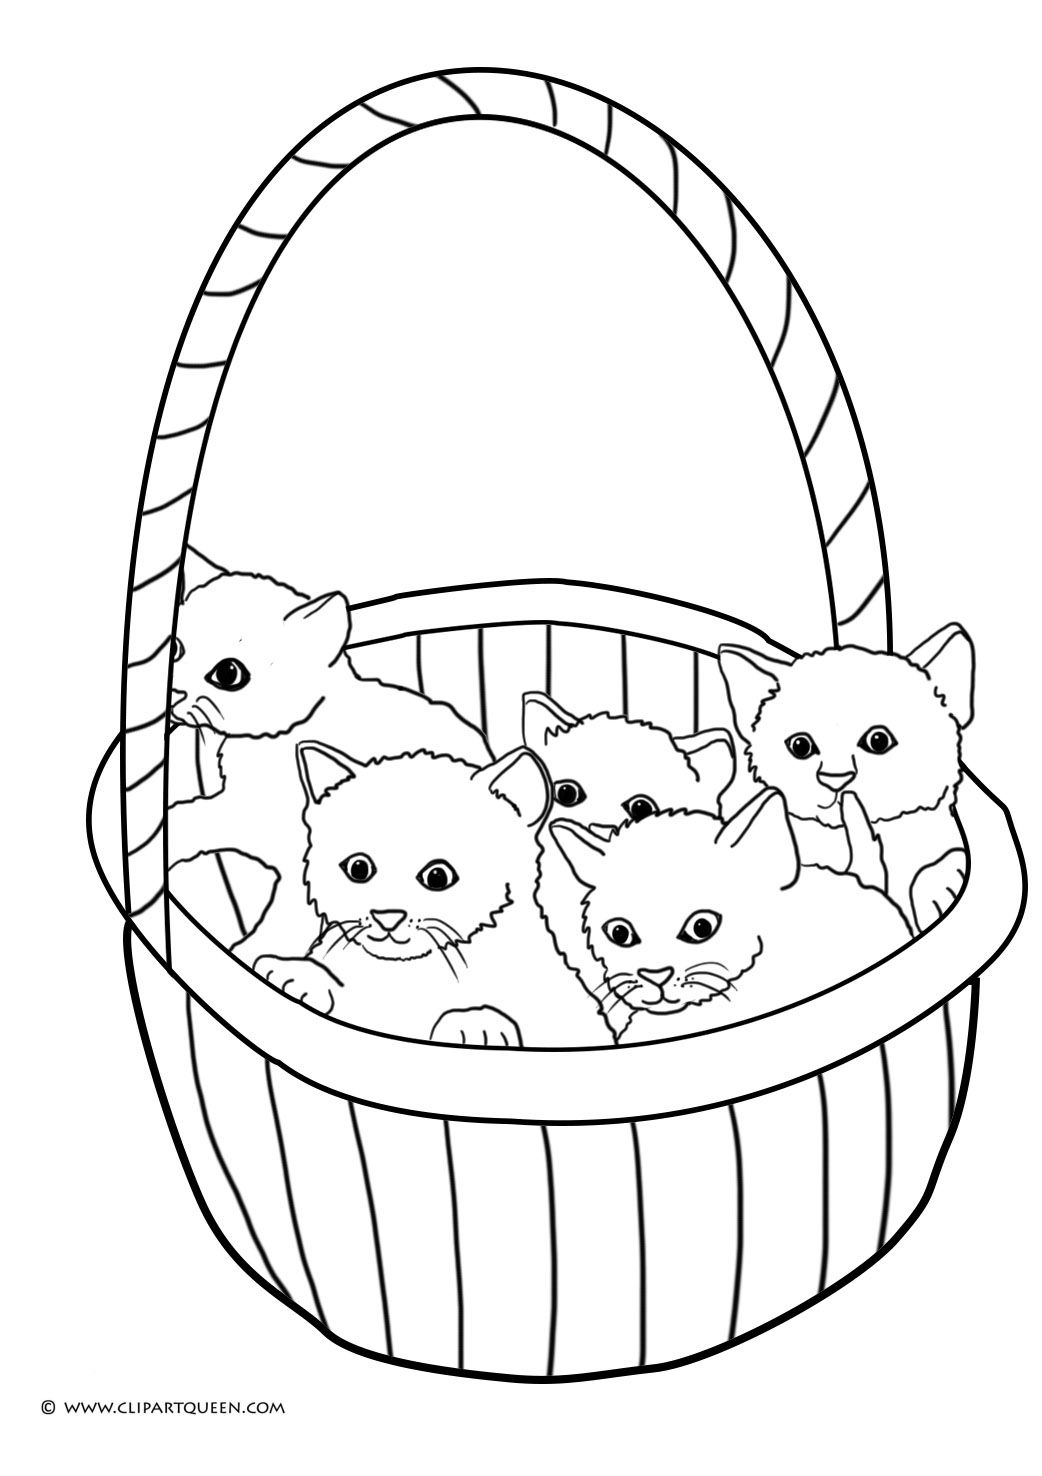 Some Sound Cat Care Tips For Owners Old And New You Can Get More Details By Clicking On The Image Kitten Coloring Book Kittens Coloring Cat Coloring Page